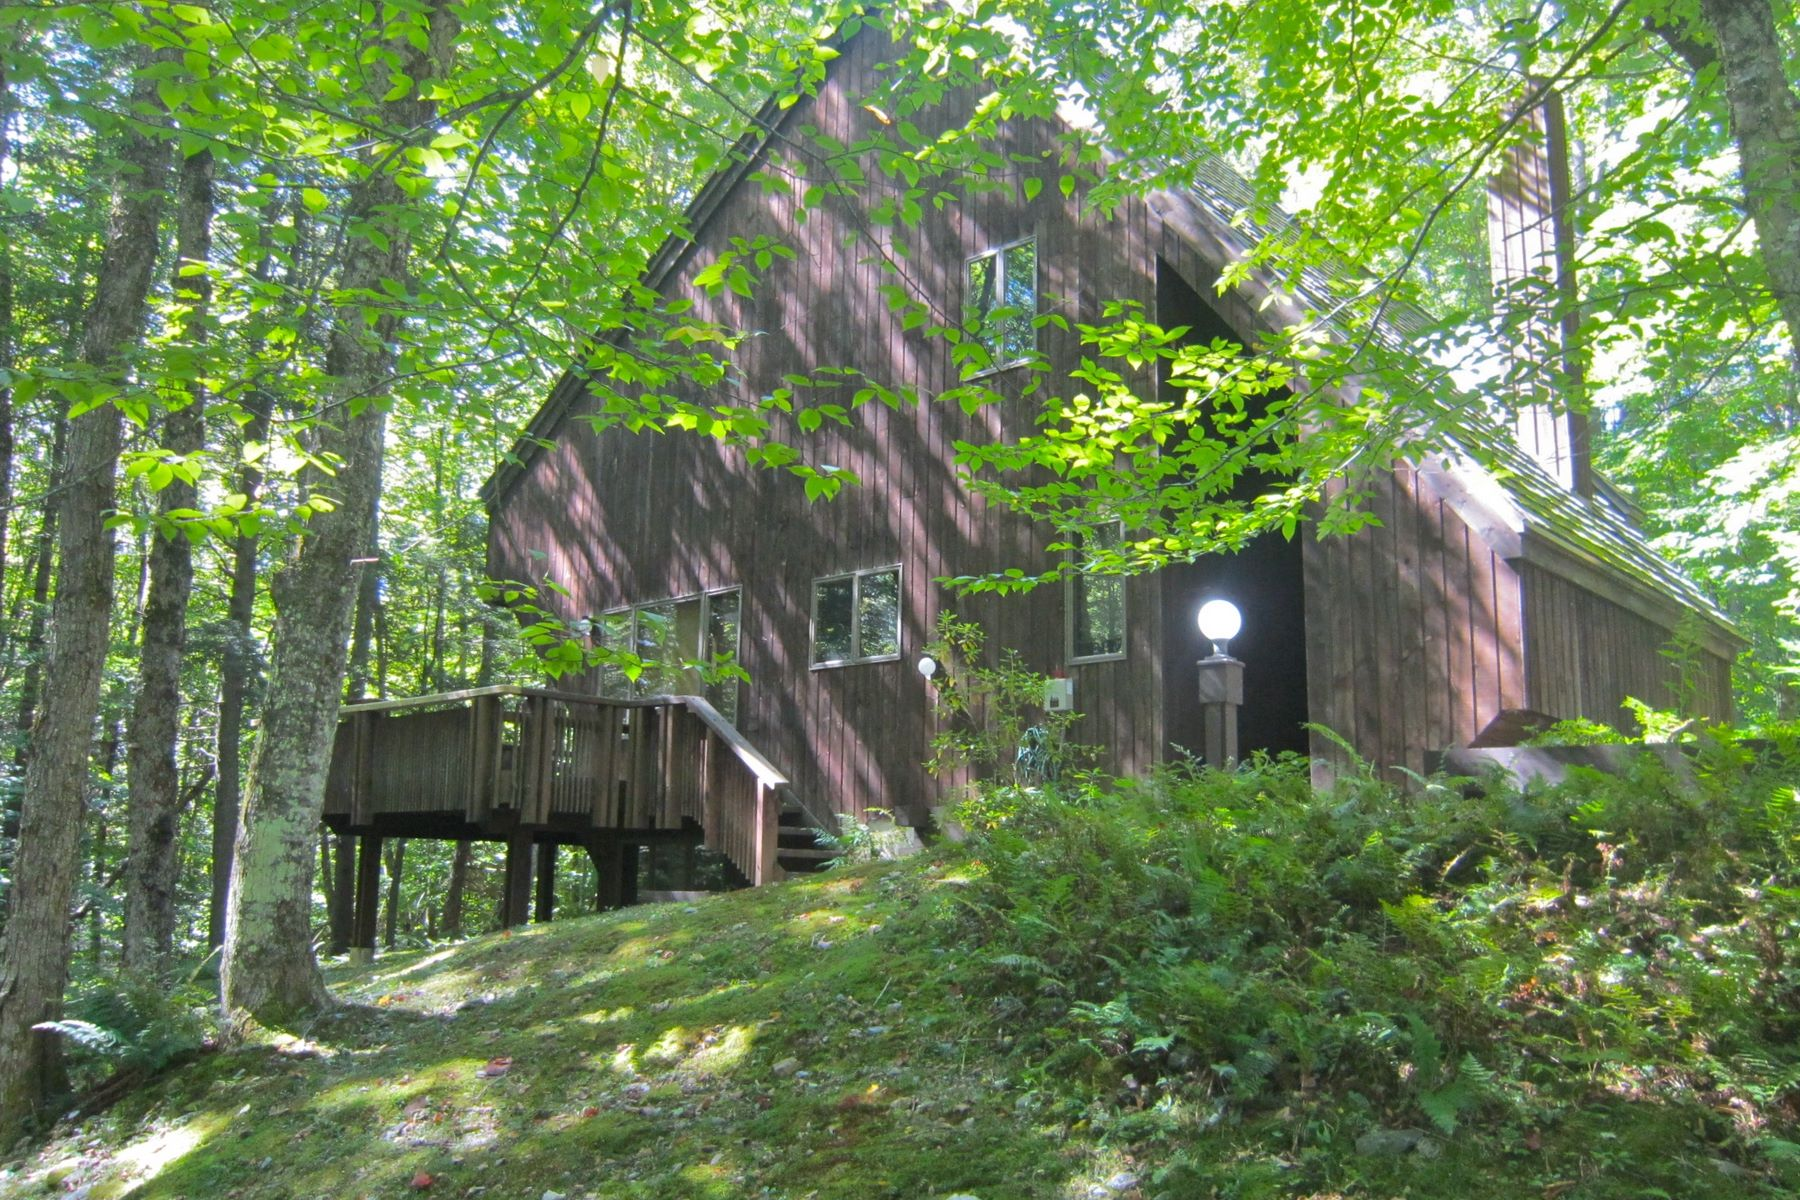 Casa Unifamiliar por un Venta en Nestled into the woods at Hawk Resort 148 Hawk Hollow Plymouth, Vermont, 05056 Estados Unidos